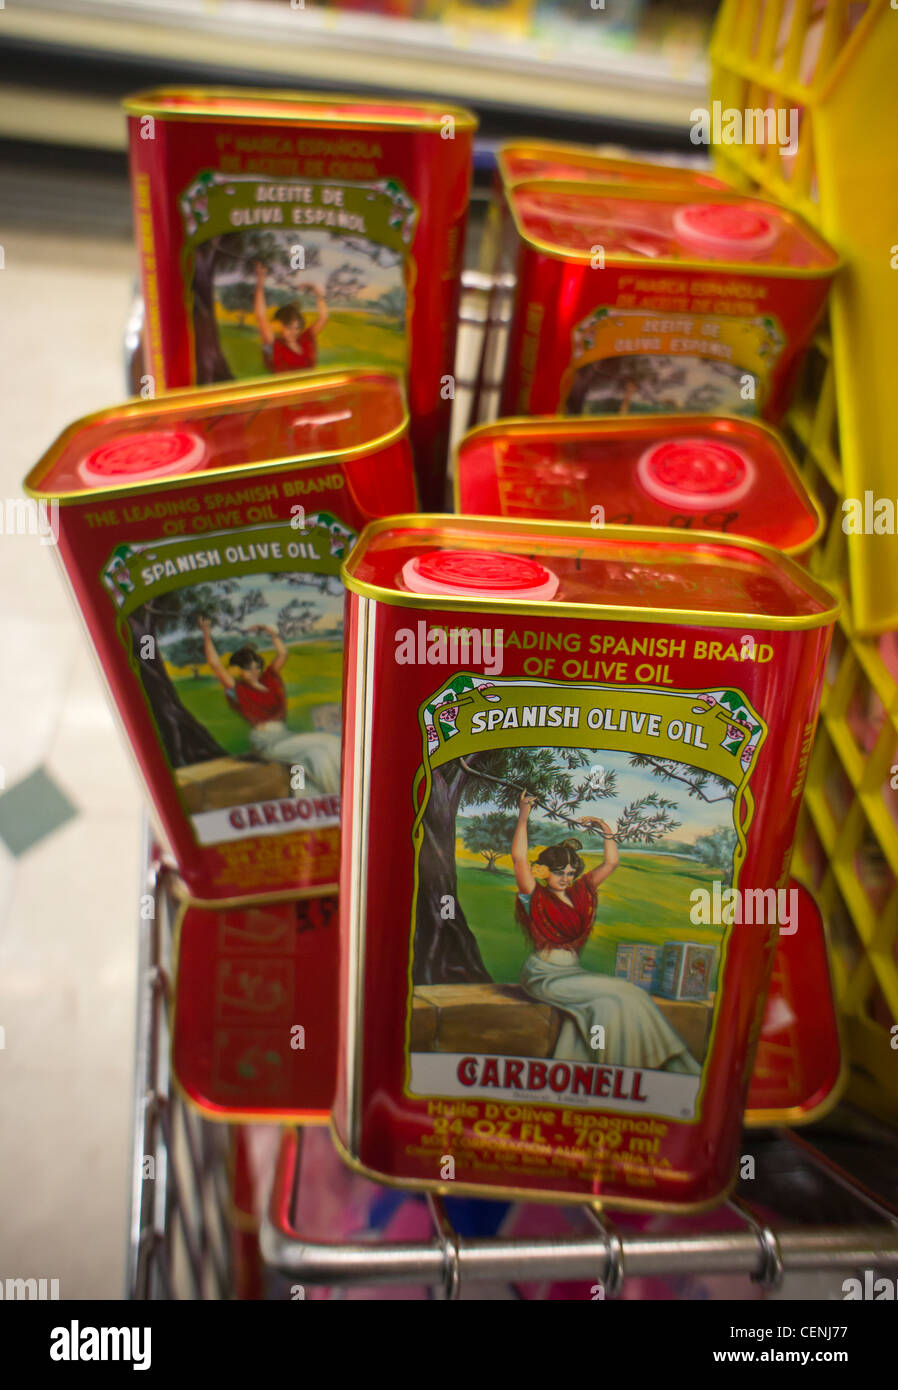 Cans of imported Spanish olive oil are seen on a supermarket shelf on Thursday, February 16, 2012. (© Richard - Stock Image